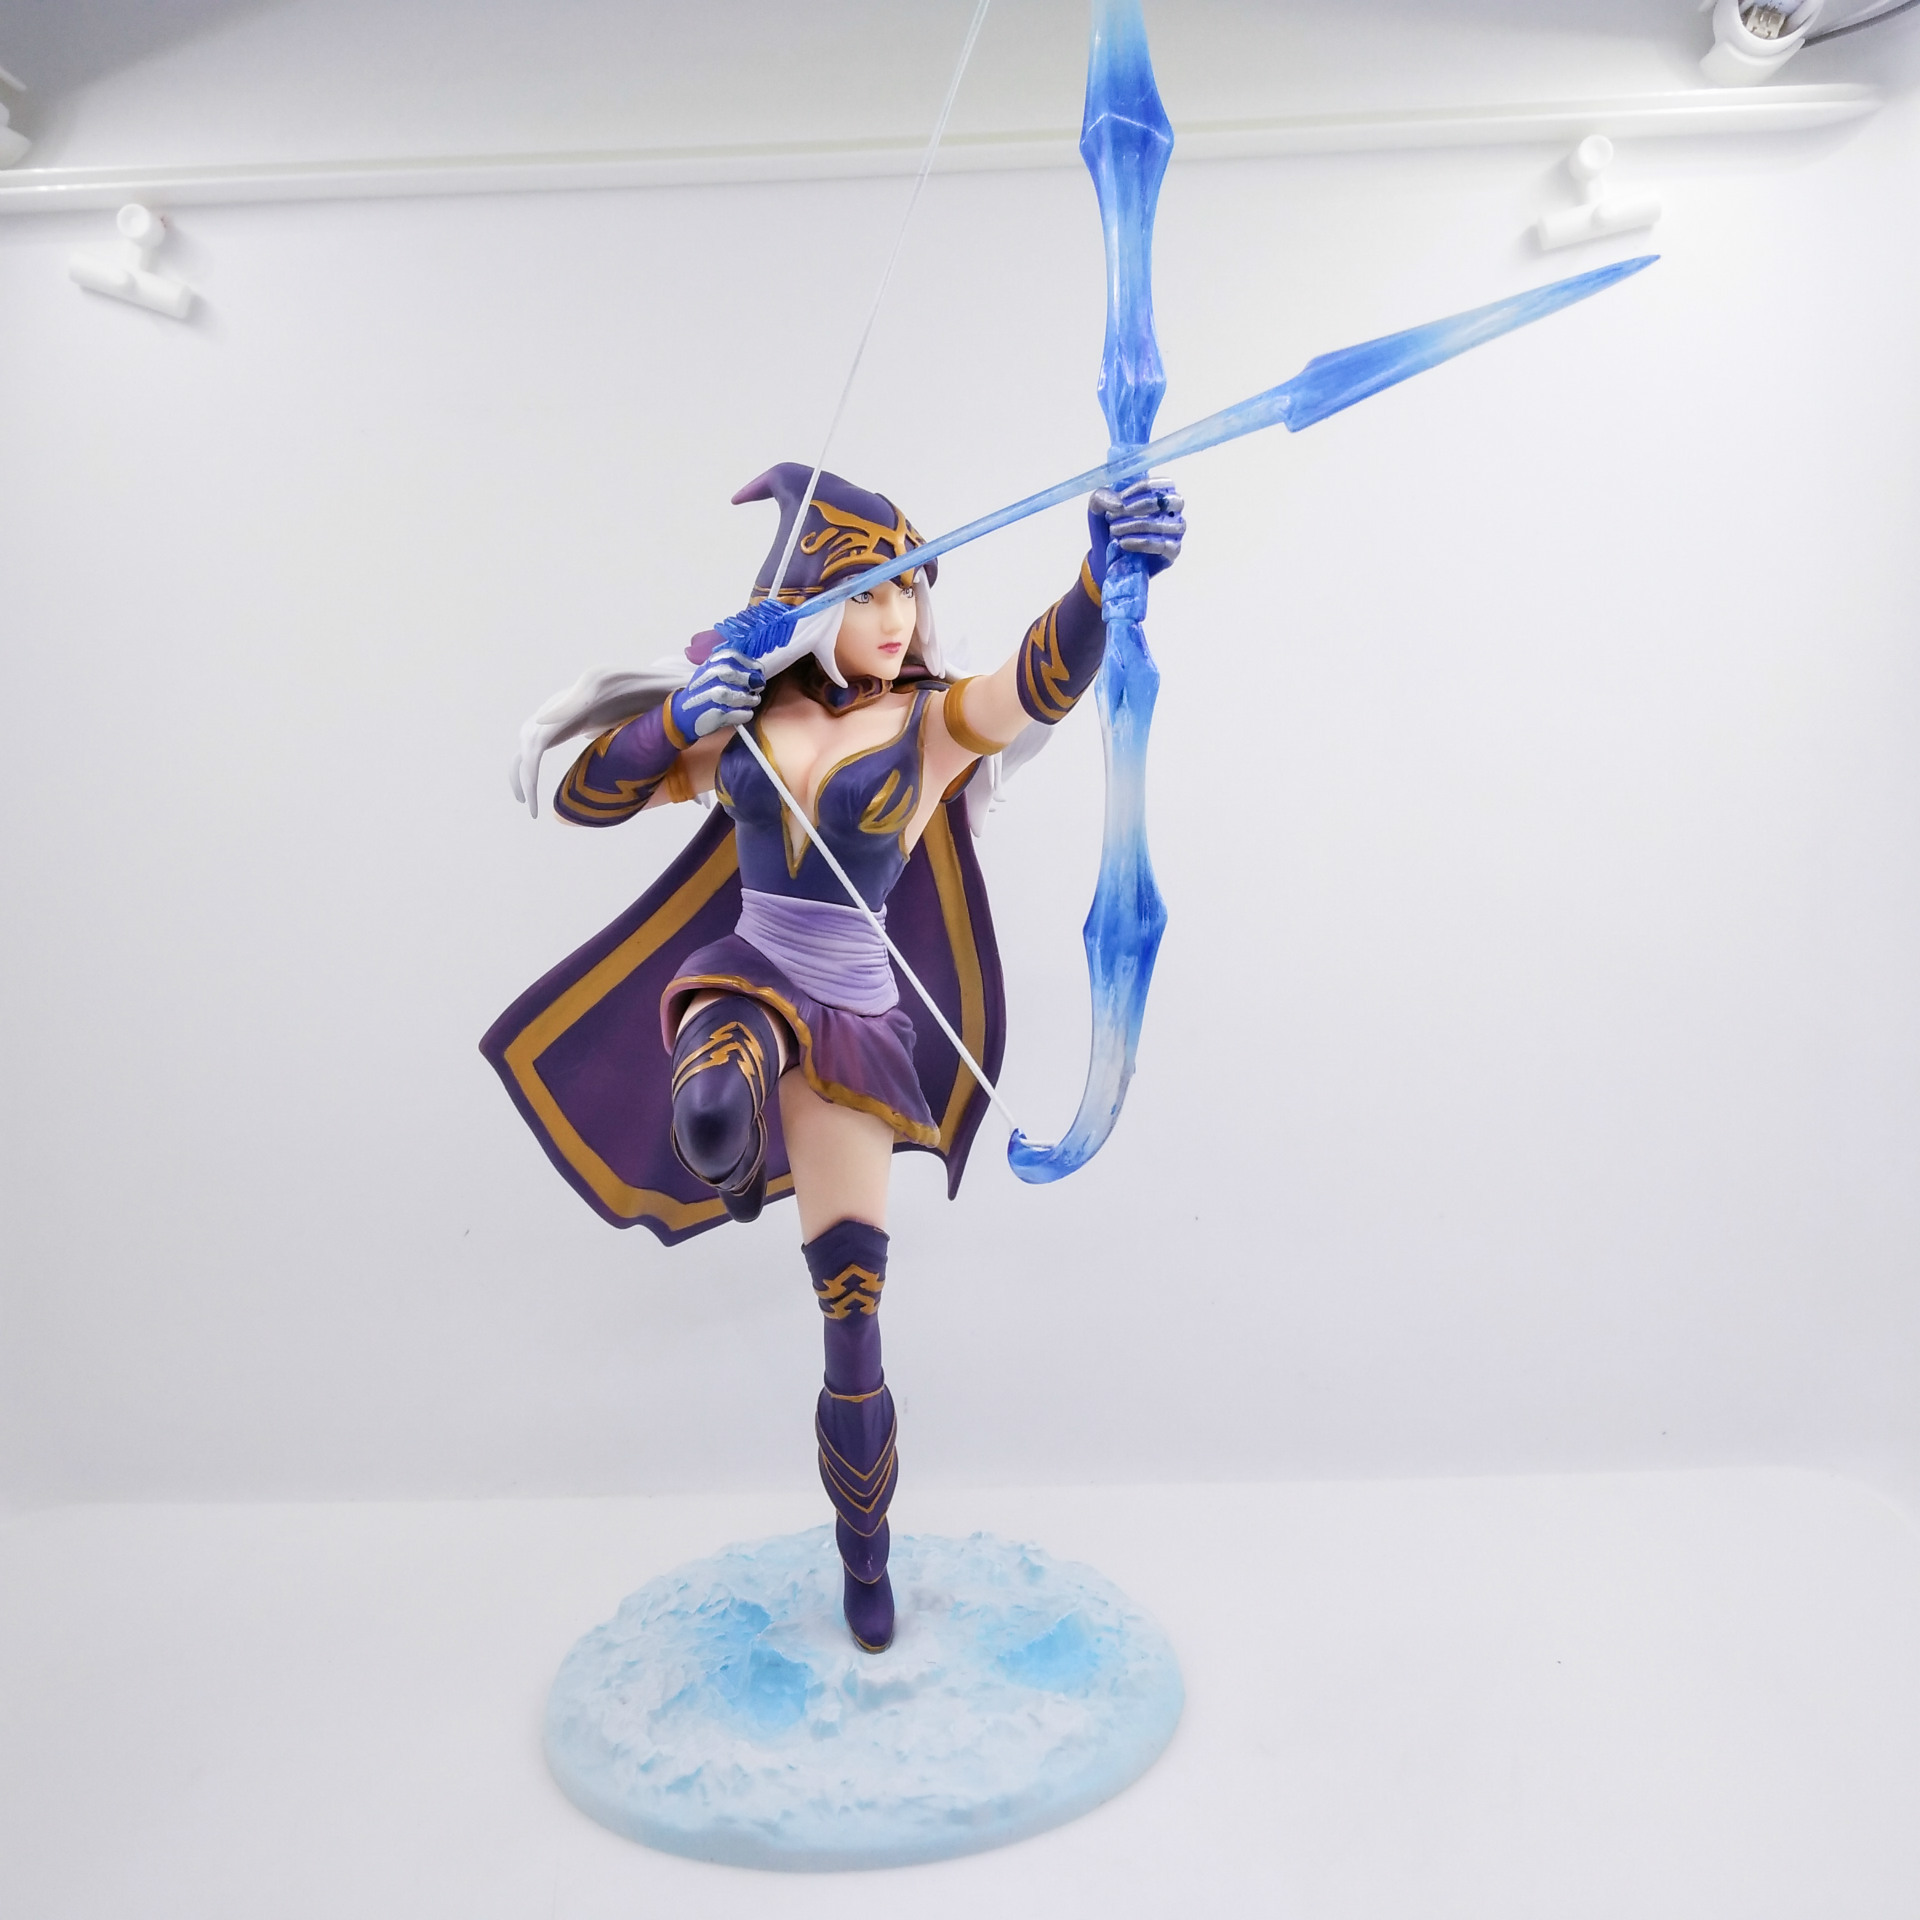 WVW 23CM Sports Game Dolls LOL Ashe VN Yasuo Zed Play Arts Model PVC Toy Action Figure Decoration For Collection Gift acgn lol game the void reaver toy figures classic collection khazix model with the original box action figure 18 cm wl0014